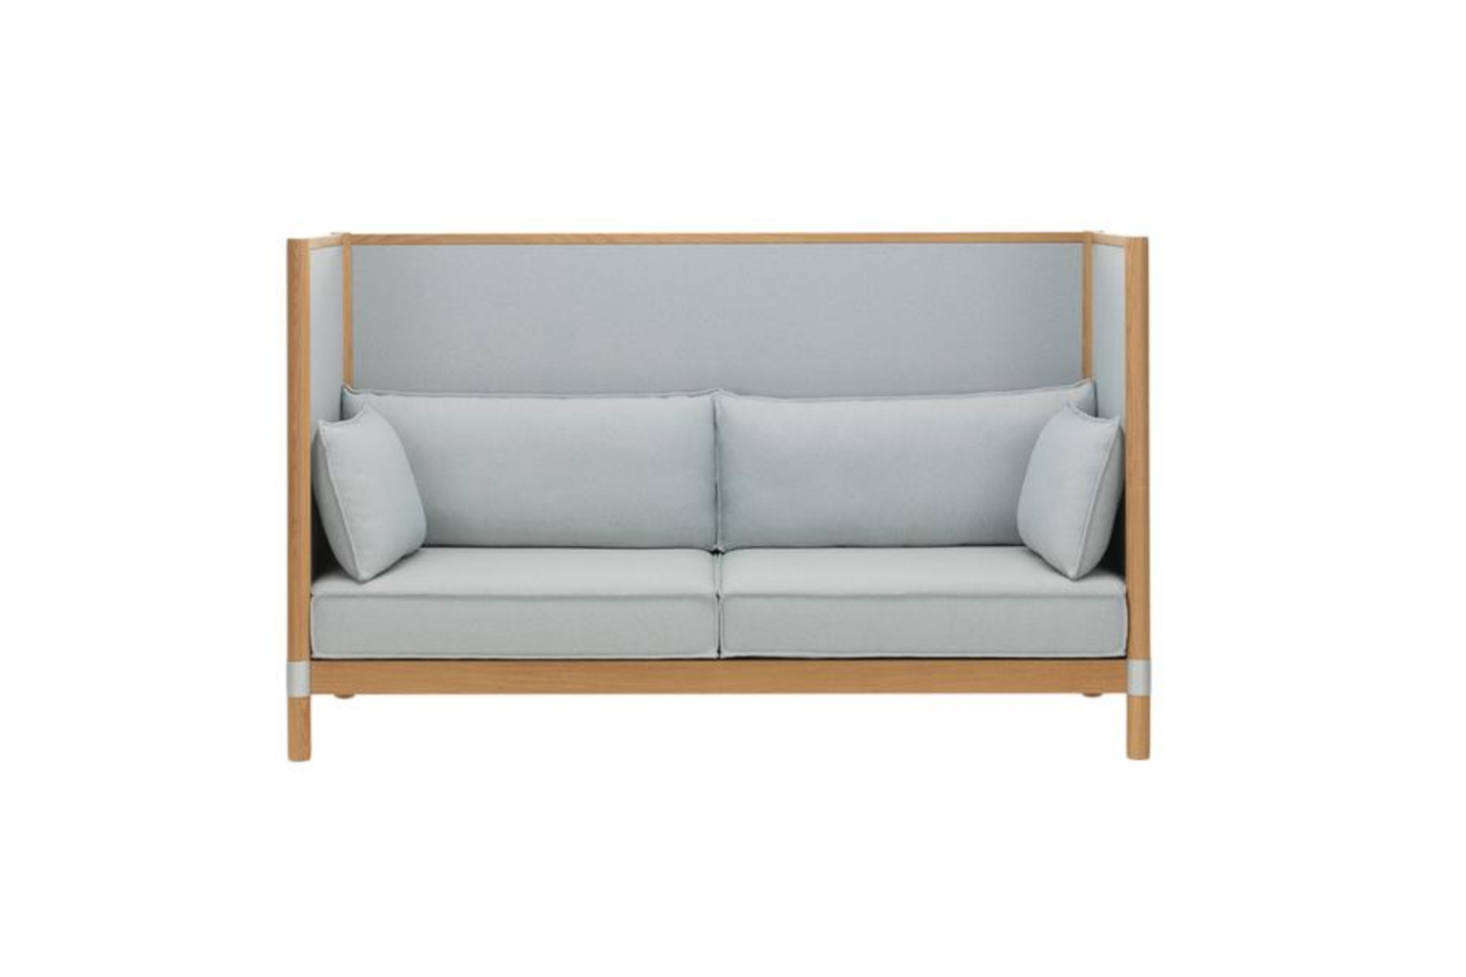 Another One From The Bouroullec Brothers For Vitra, The Cyl Highback Sofa  Has A Solid